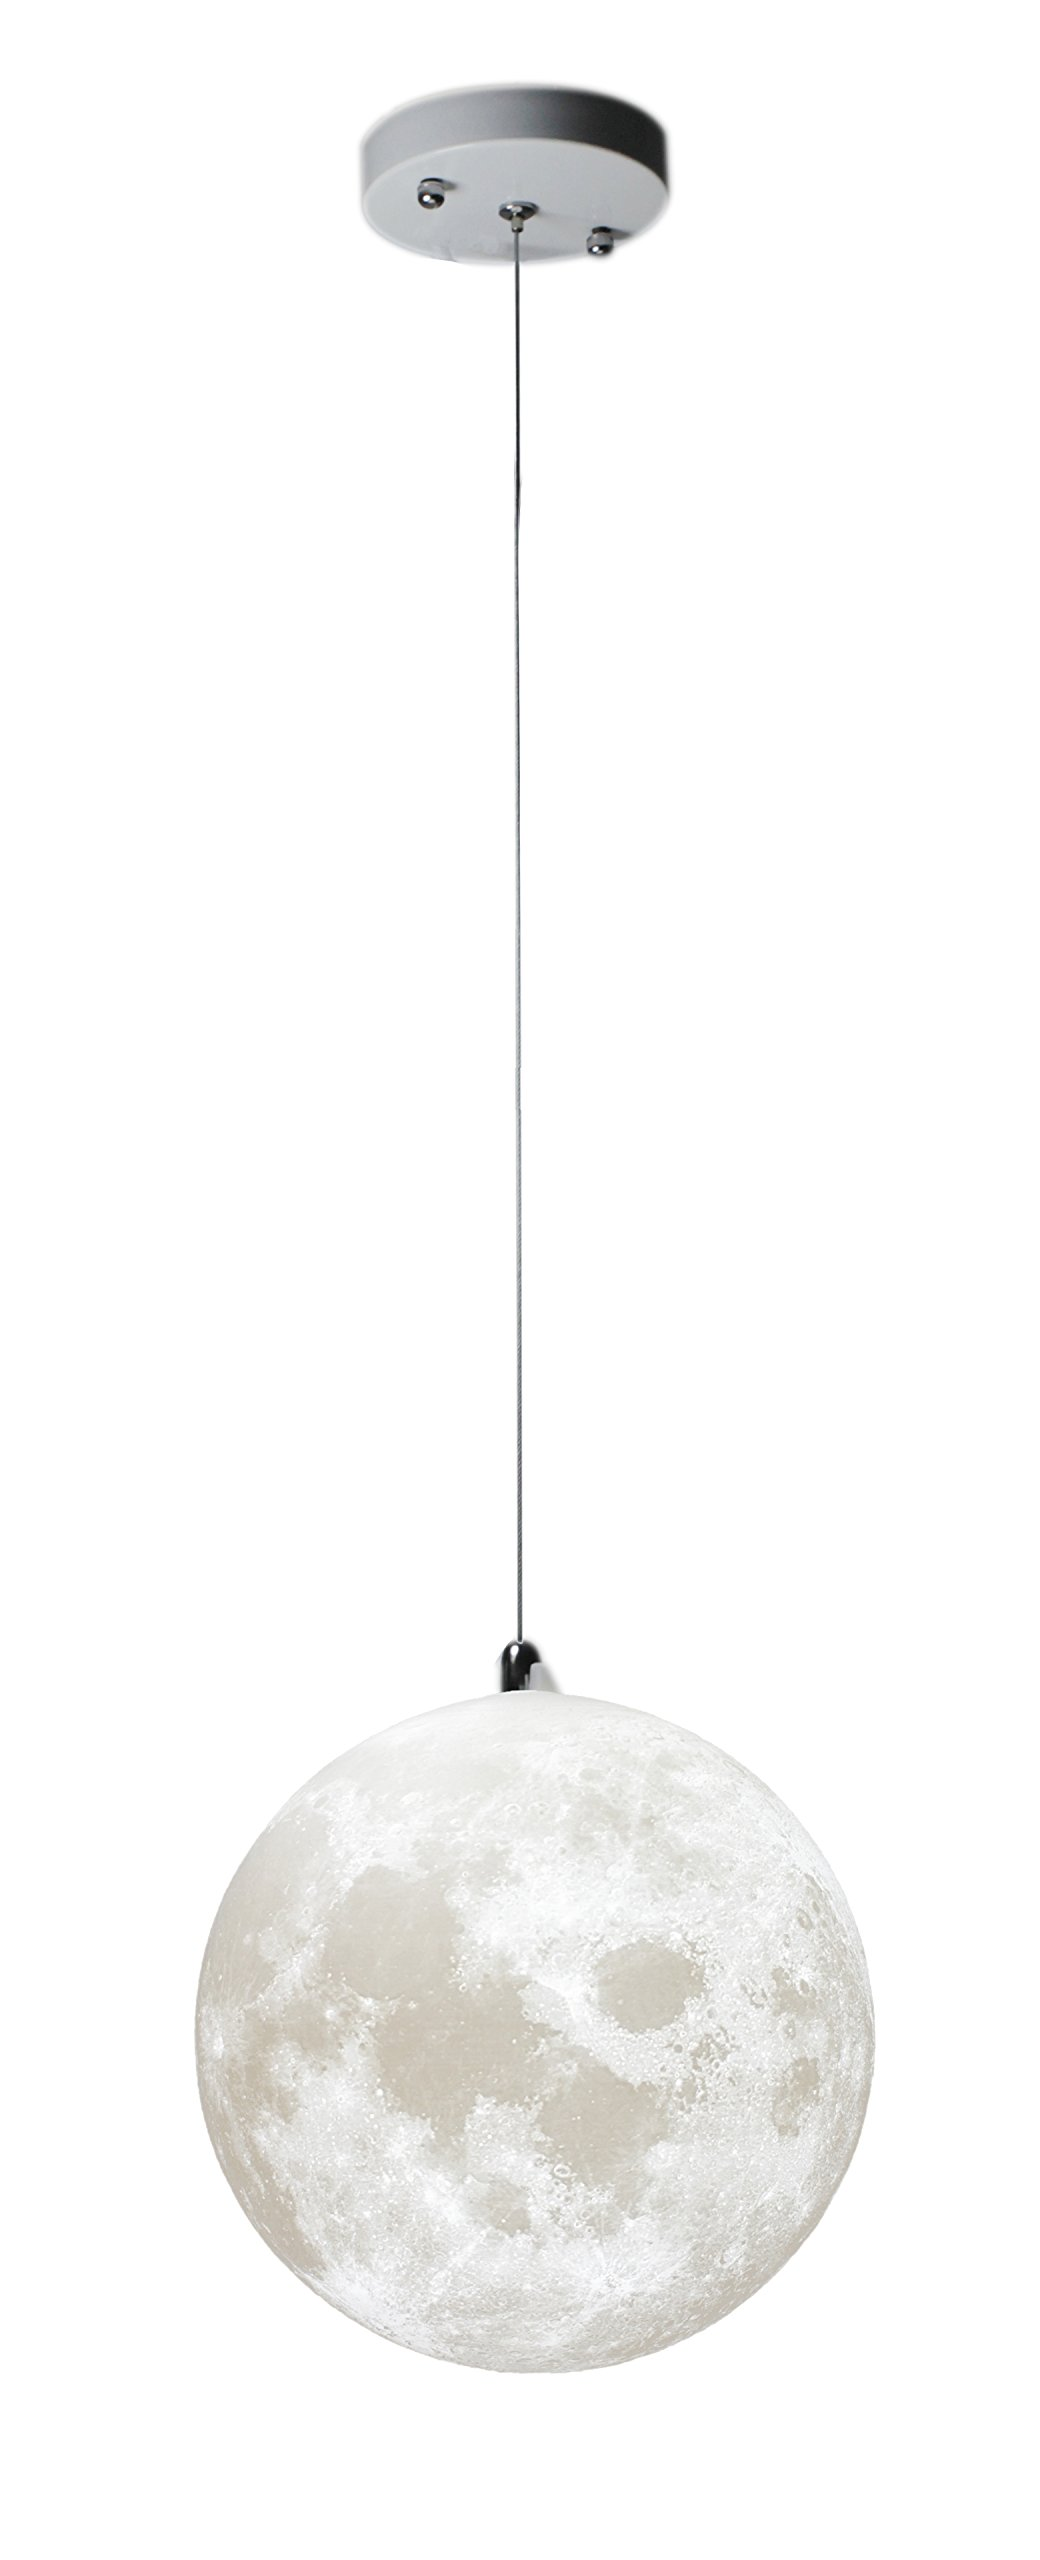 KUNGKEN Moon Chandelier LED 3D Printing Moon Ceiling Lamp Warm and Cool Lighting Bulbs Included for Kitchen Restaurant Cafe Hotel Foyer Decoration 8IN